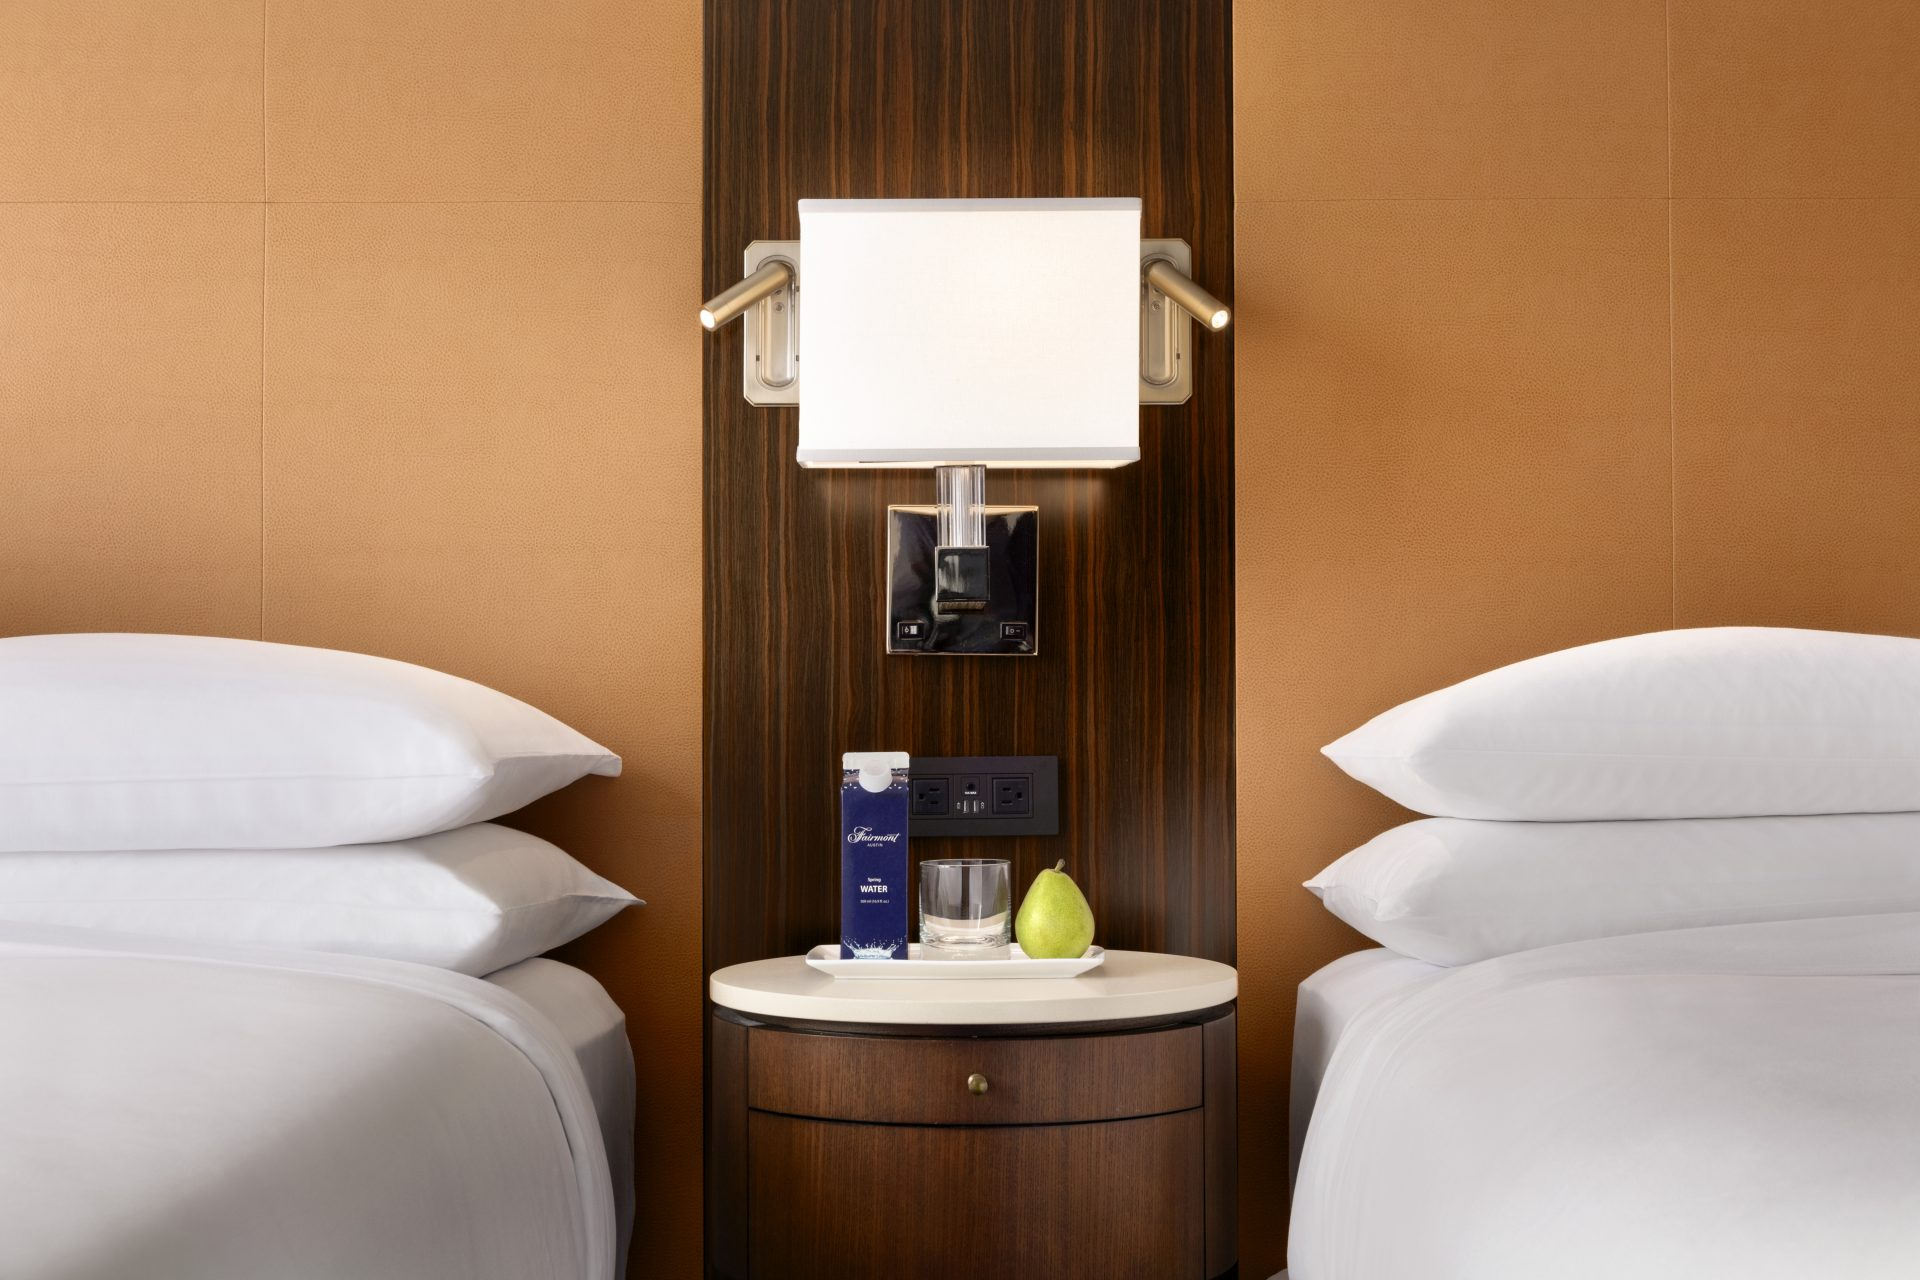 Nightstand with 2 personal reading lights, convenient power outlets, and complimentary water and fruit between 2 queen beds